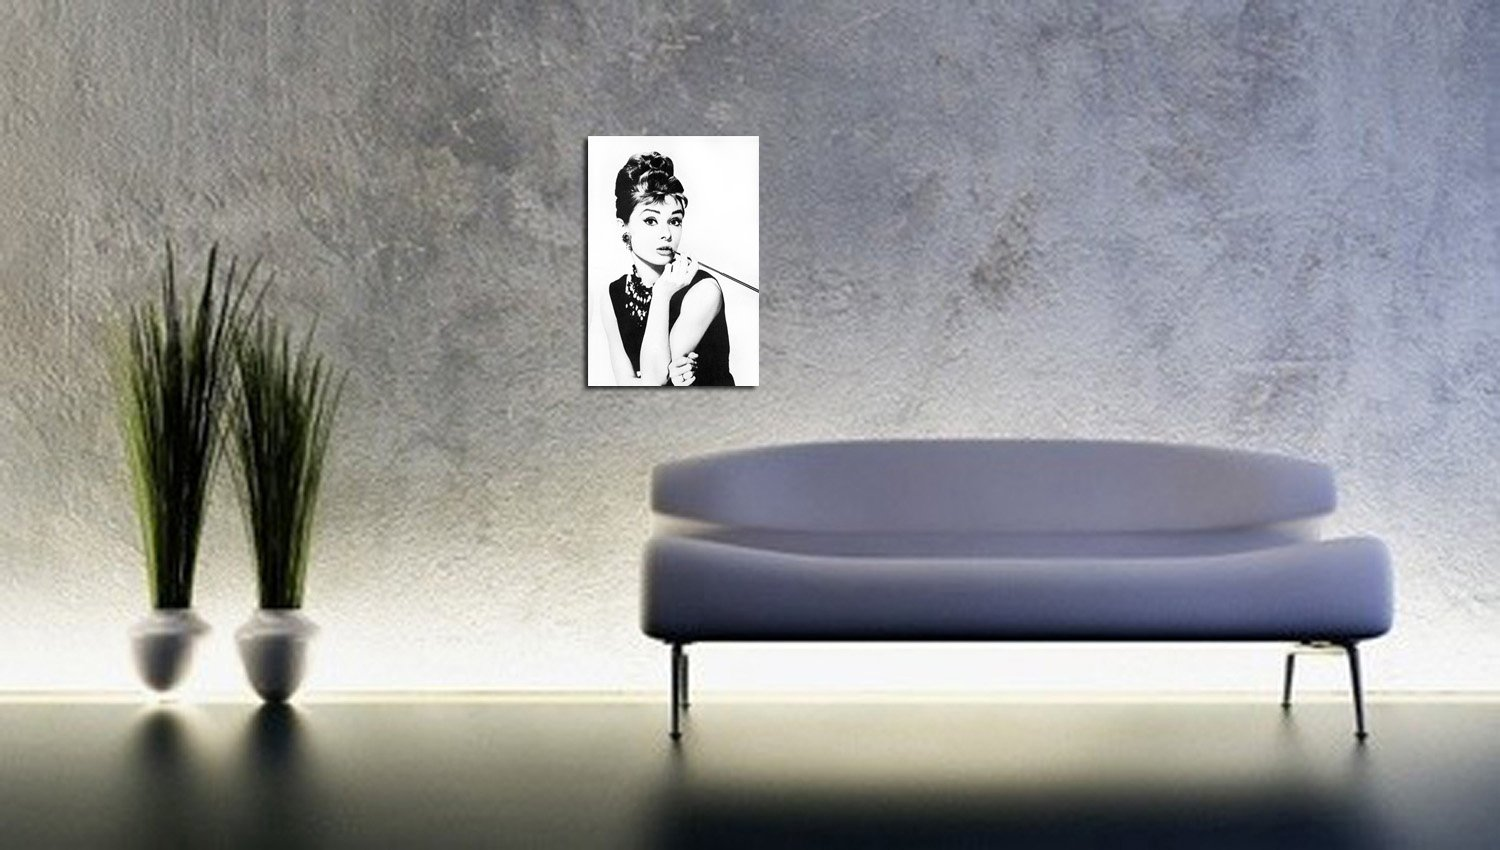 66815592d261 Audrey Hepburn Smoking Picture on Canvas Breakfast at Tiffany s Art Print  Movie Film Glamour Star Decorative Art Print on Stretcher Frame Ready to  Hang 80 x ...